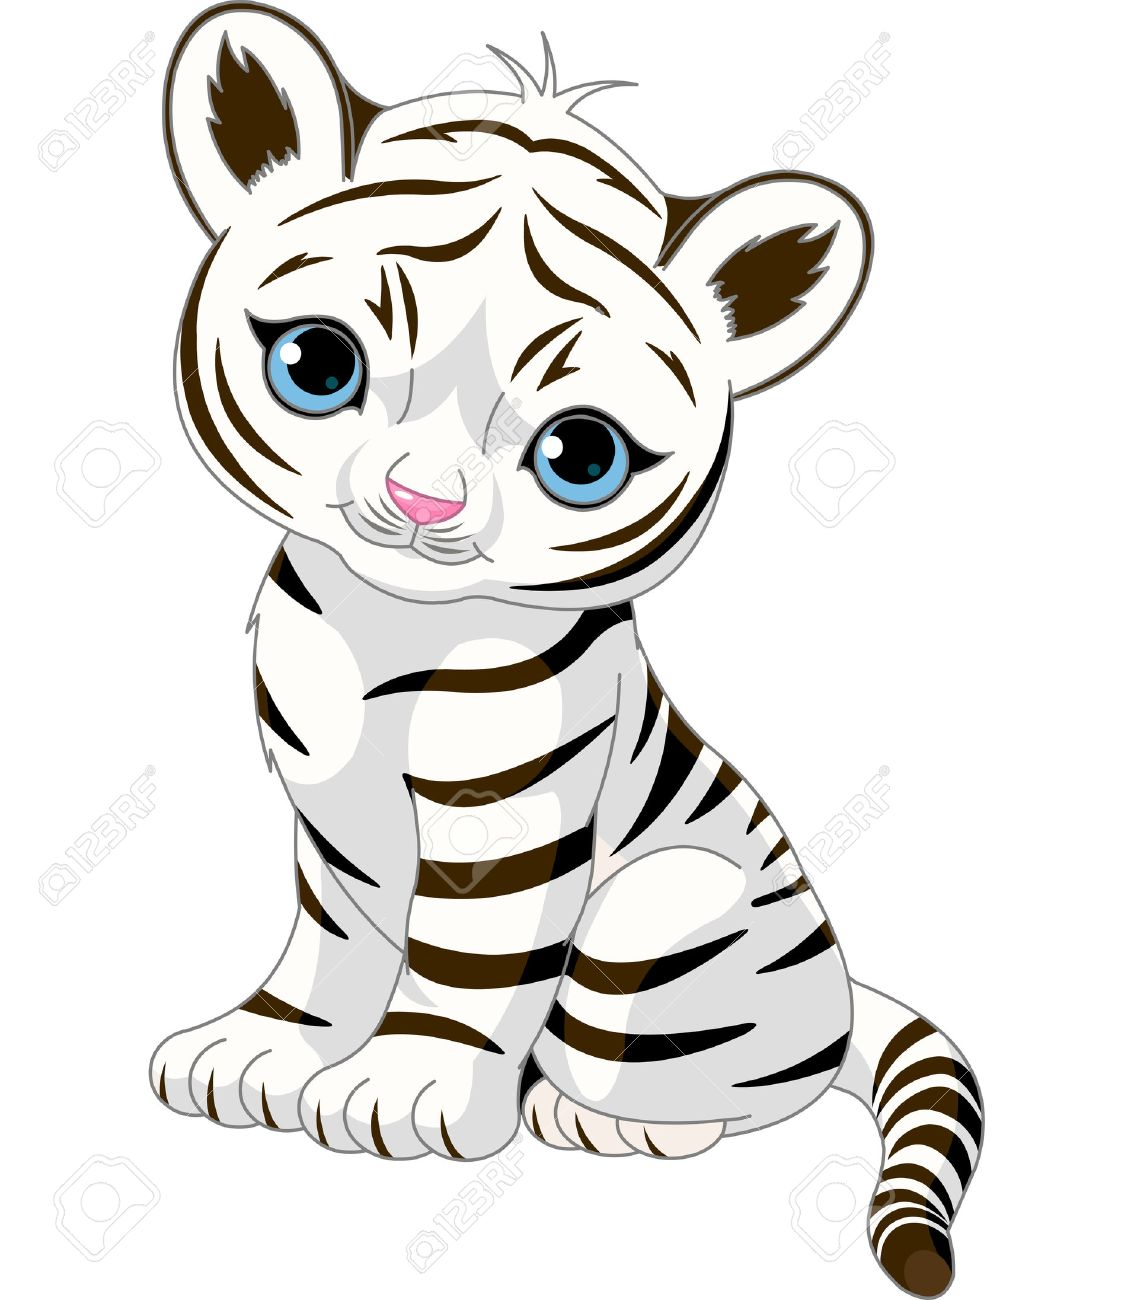 baby white tiger drawing at getdrawings com free for personal use rh getdrawings com